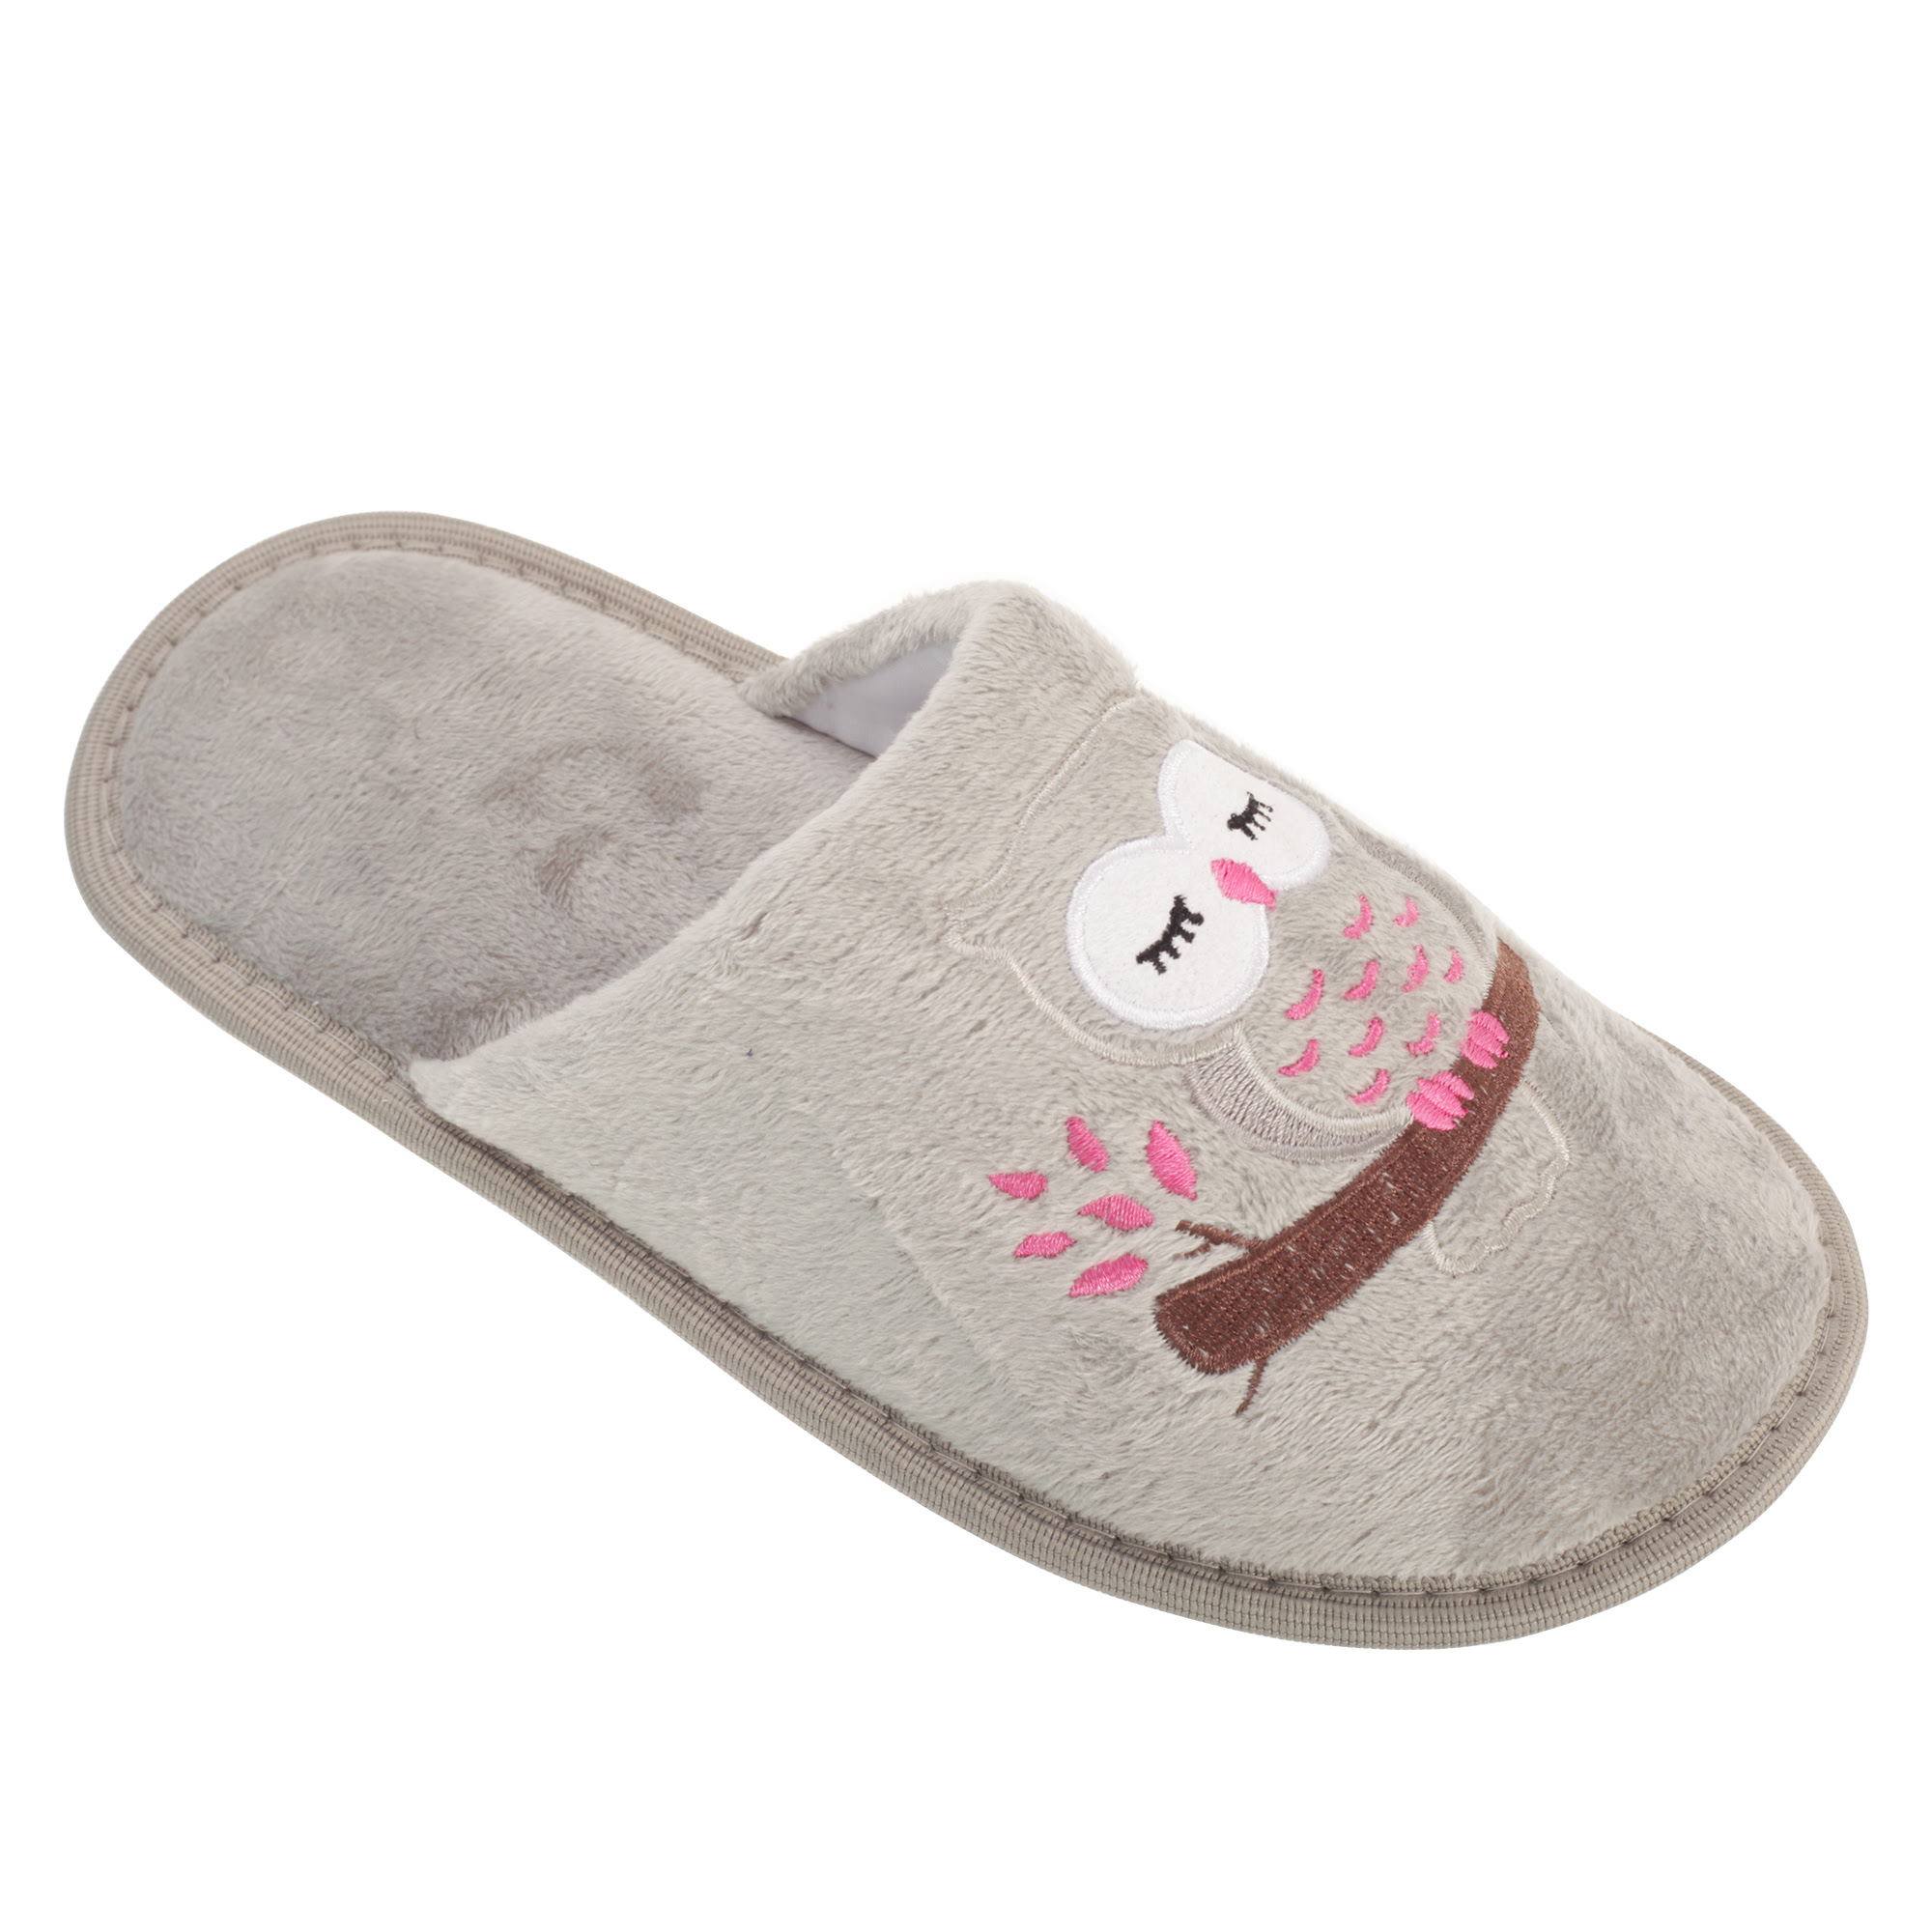 Slumberzzz Womens/Ladies Owl Design Slip-On Slippers | eBay